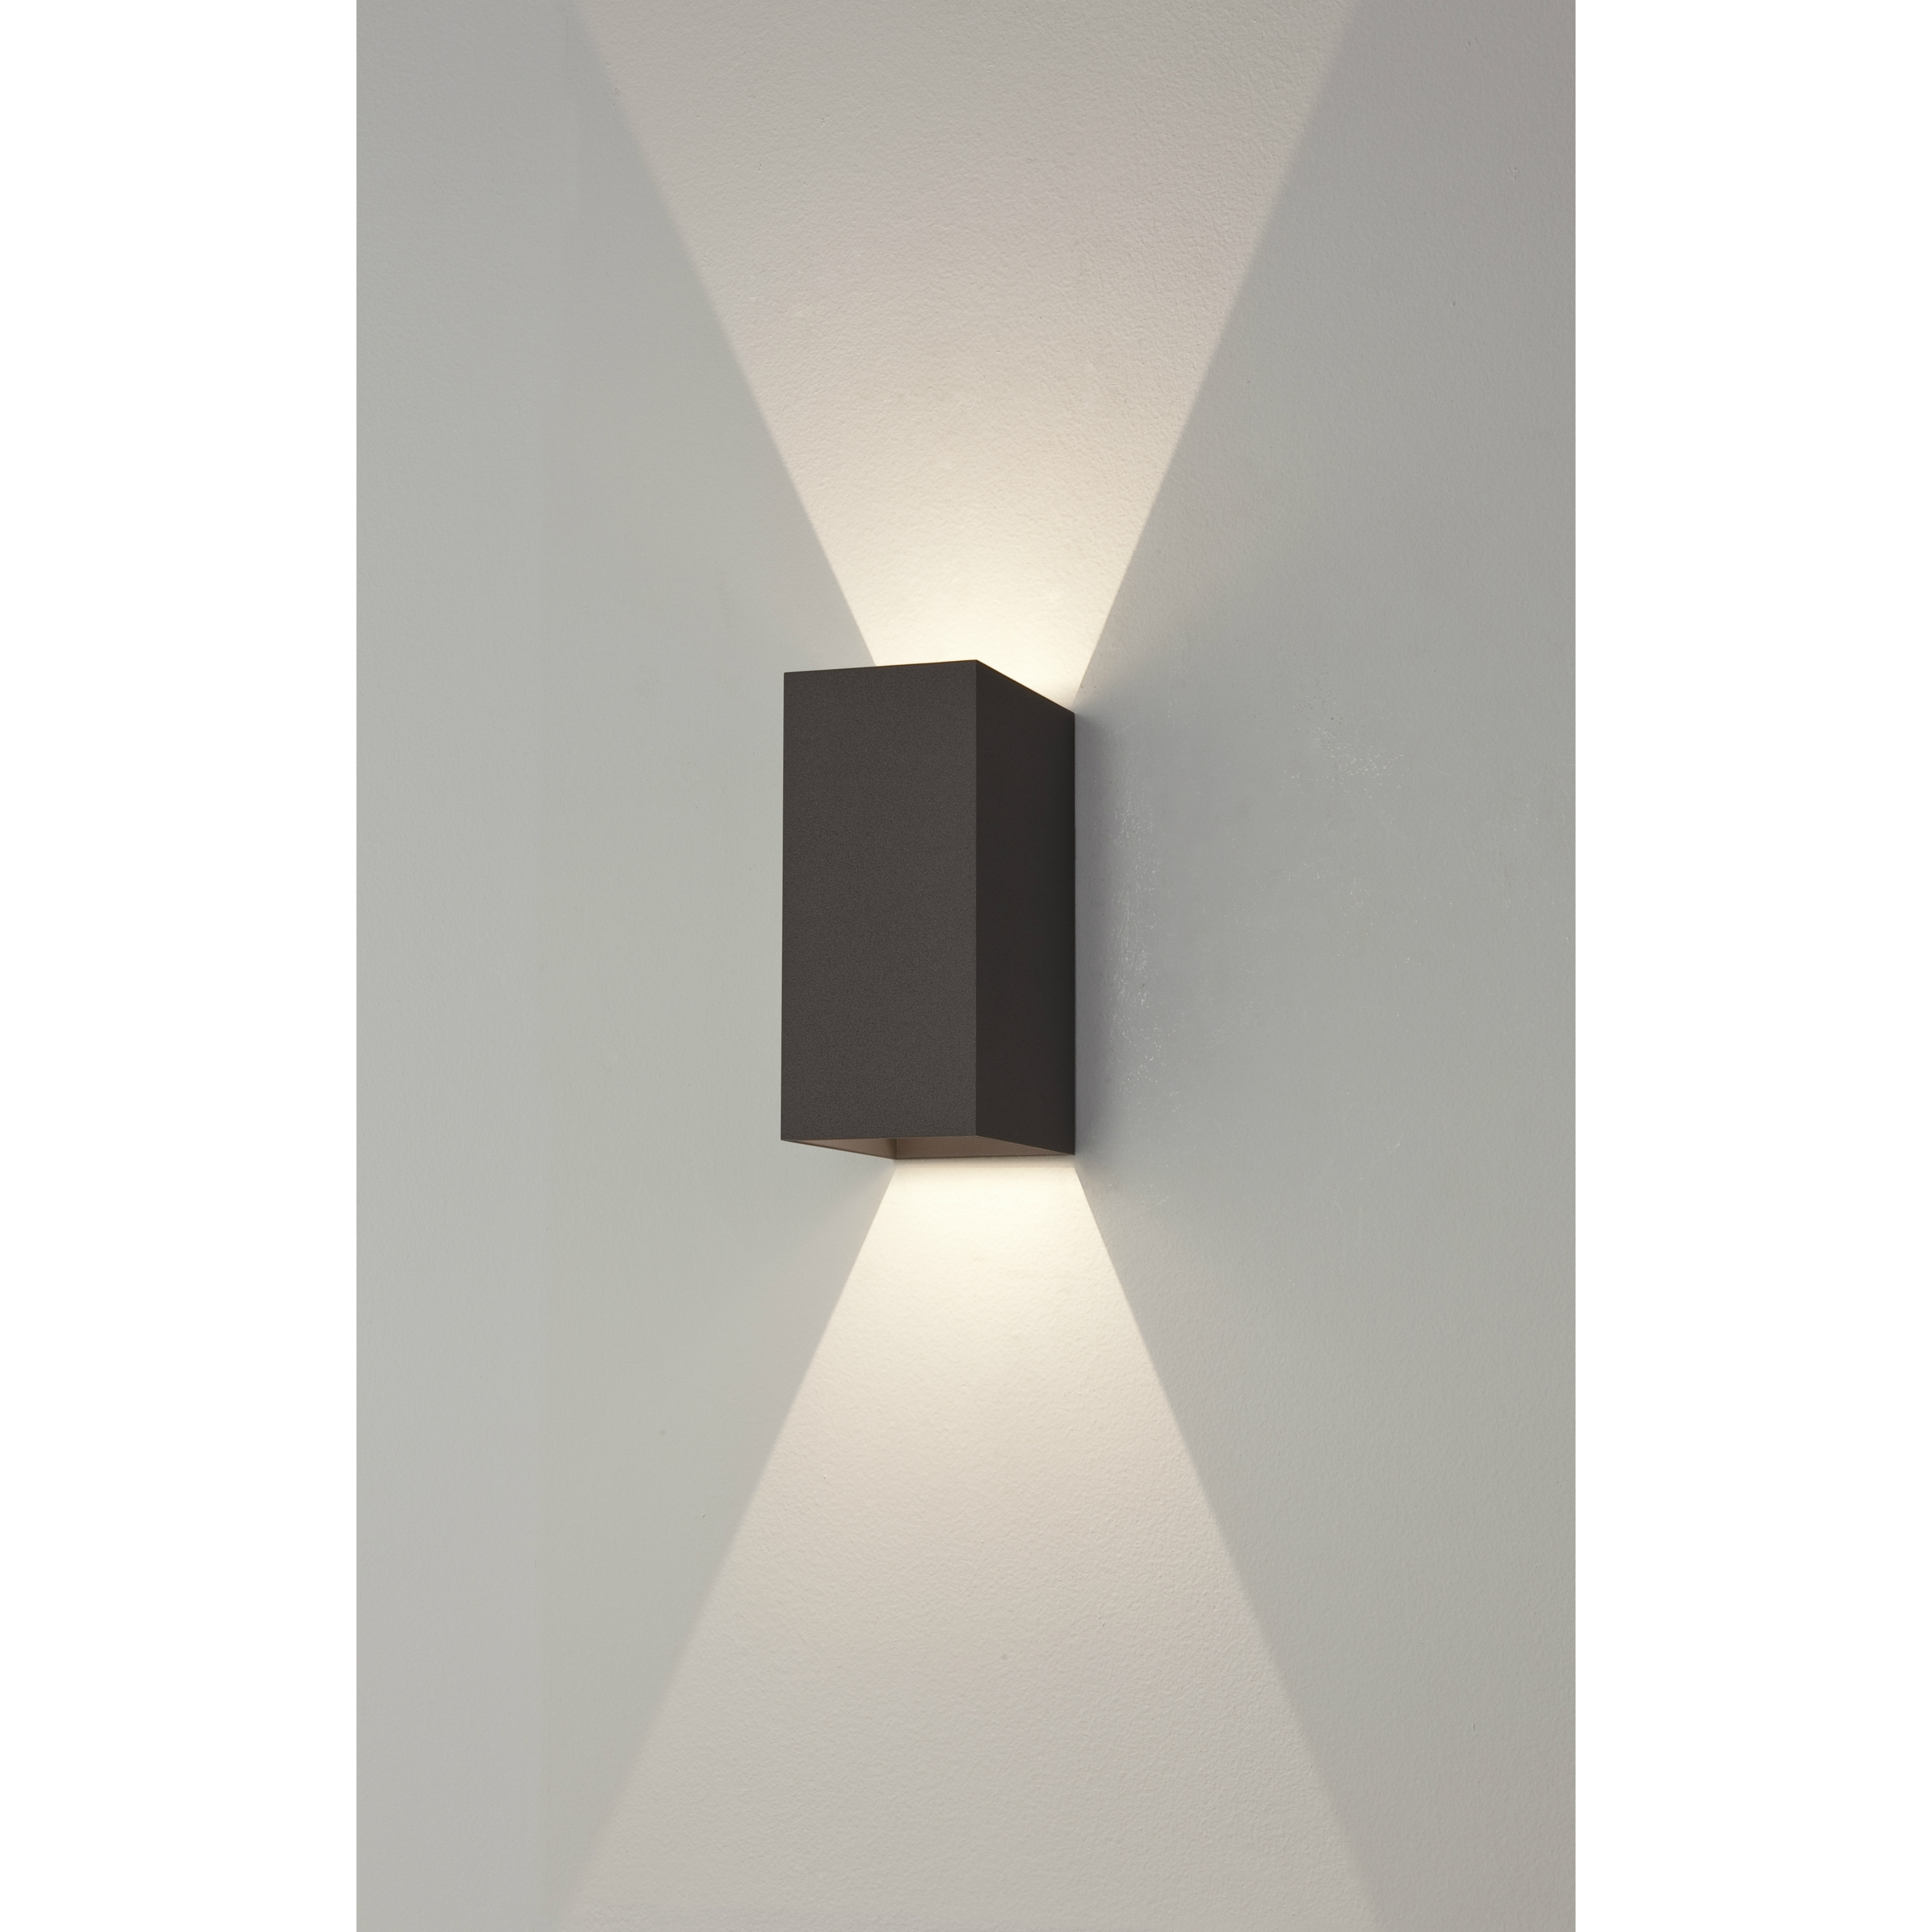 Outdoor Corner Wall Lighting Inside Best And Newest Outdoor Corner Wall Light – Outdoor Designs (View 11 of 20)